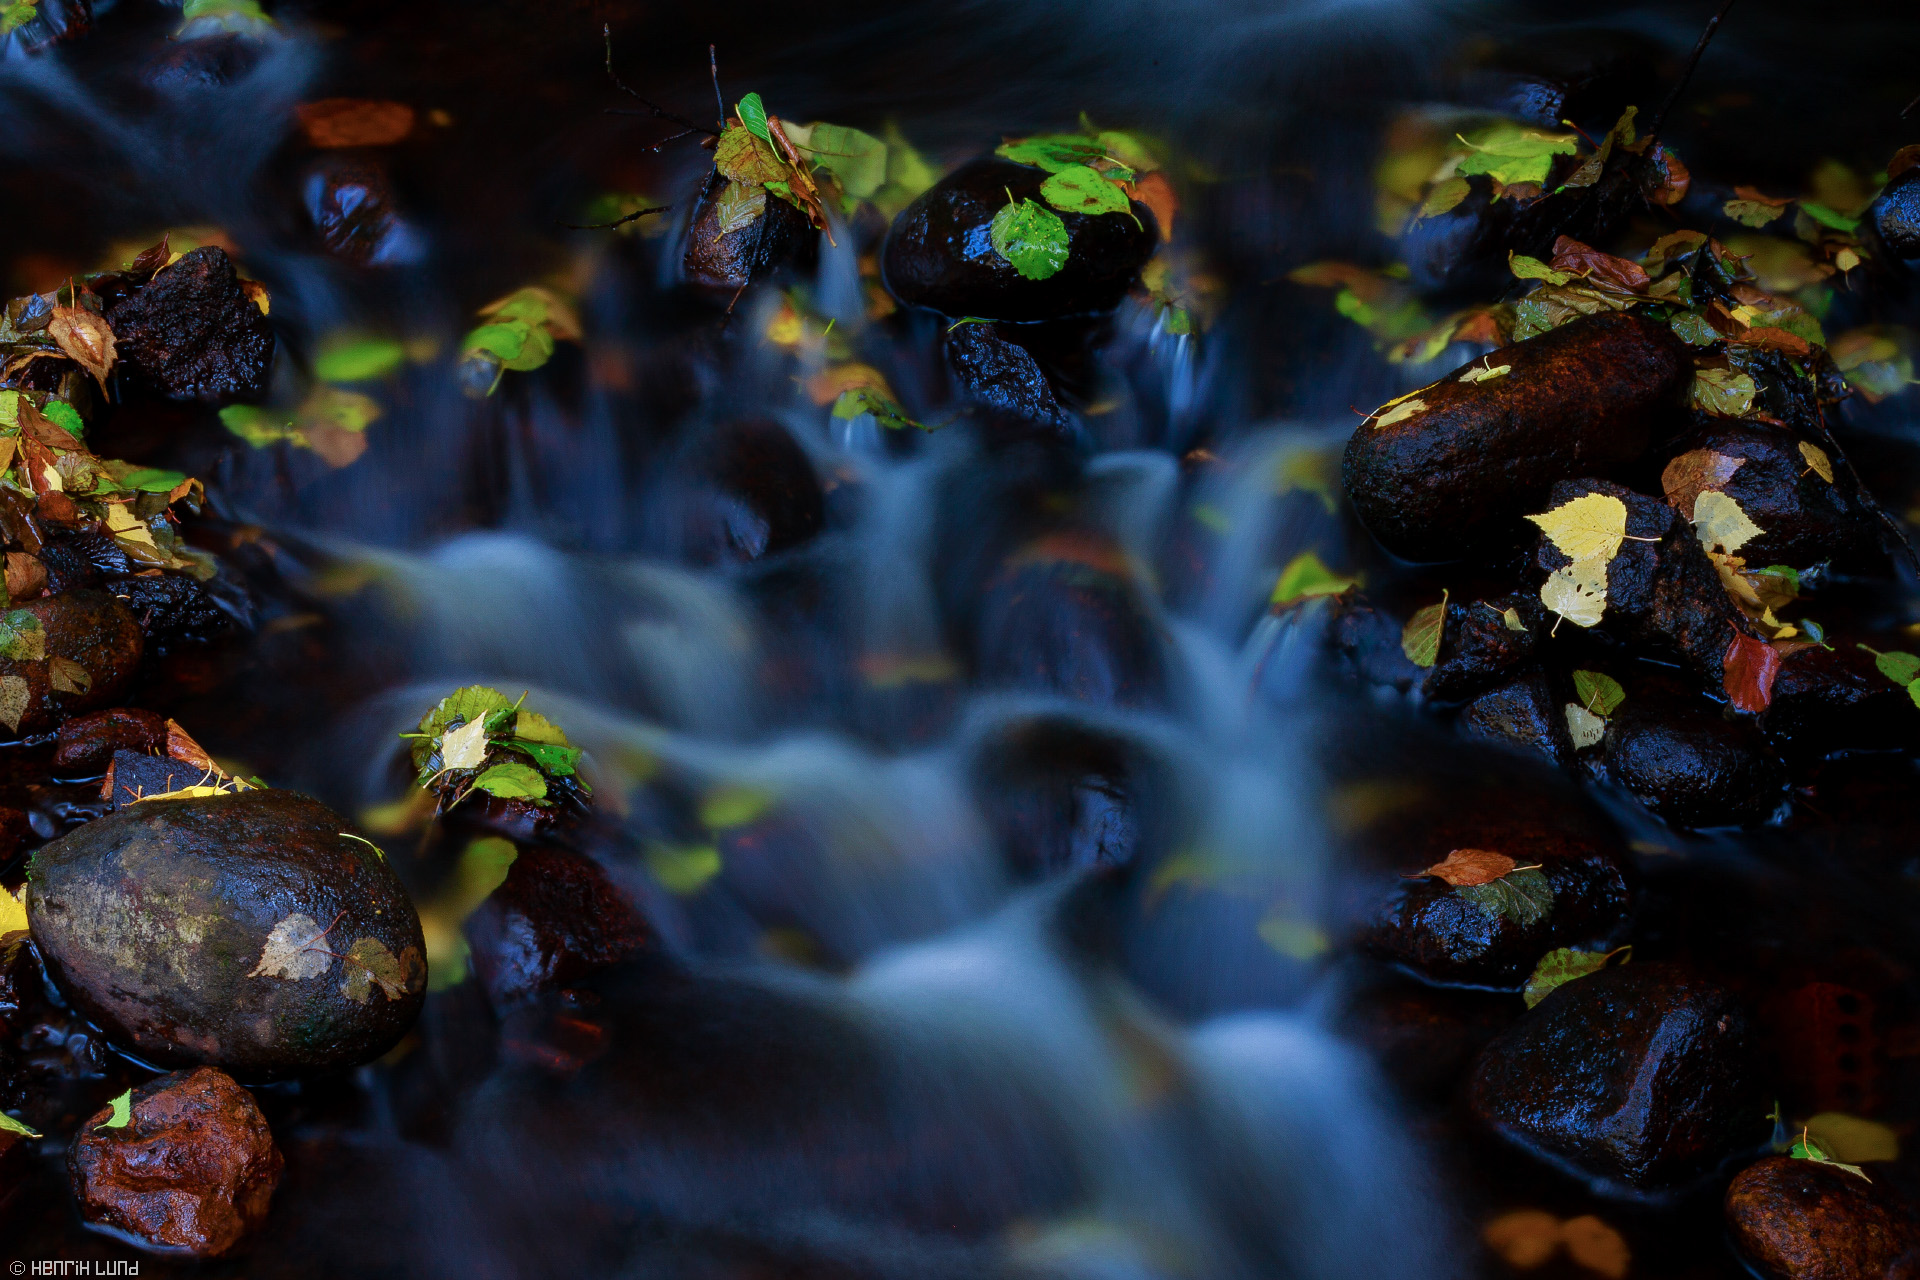 Autumn leaves in the flowing water rapids, Mathildedal, Finland.